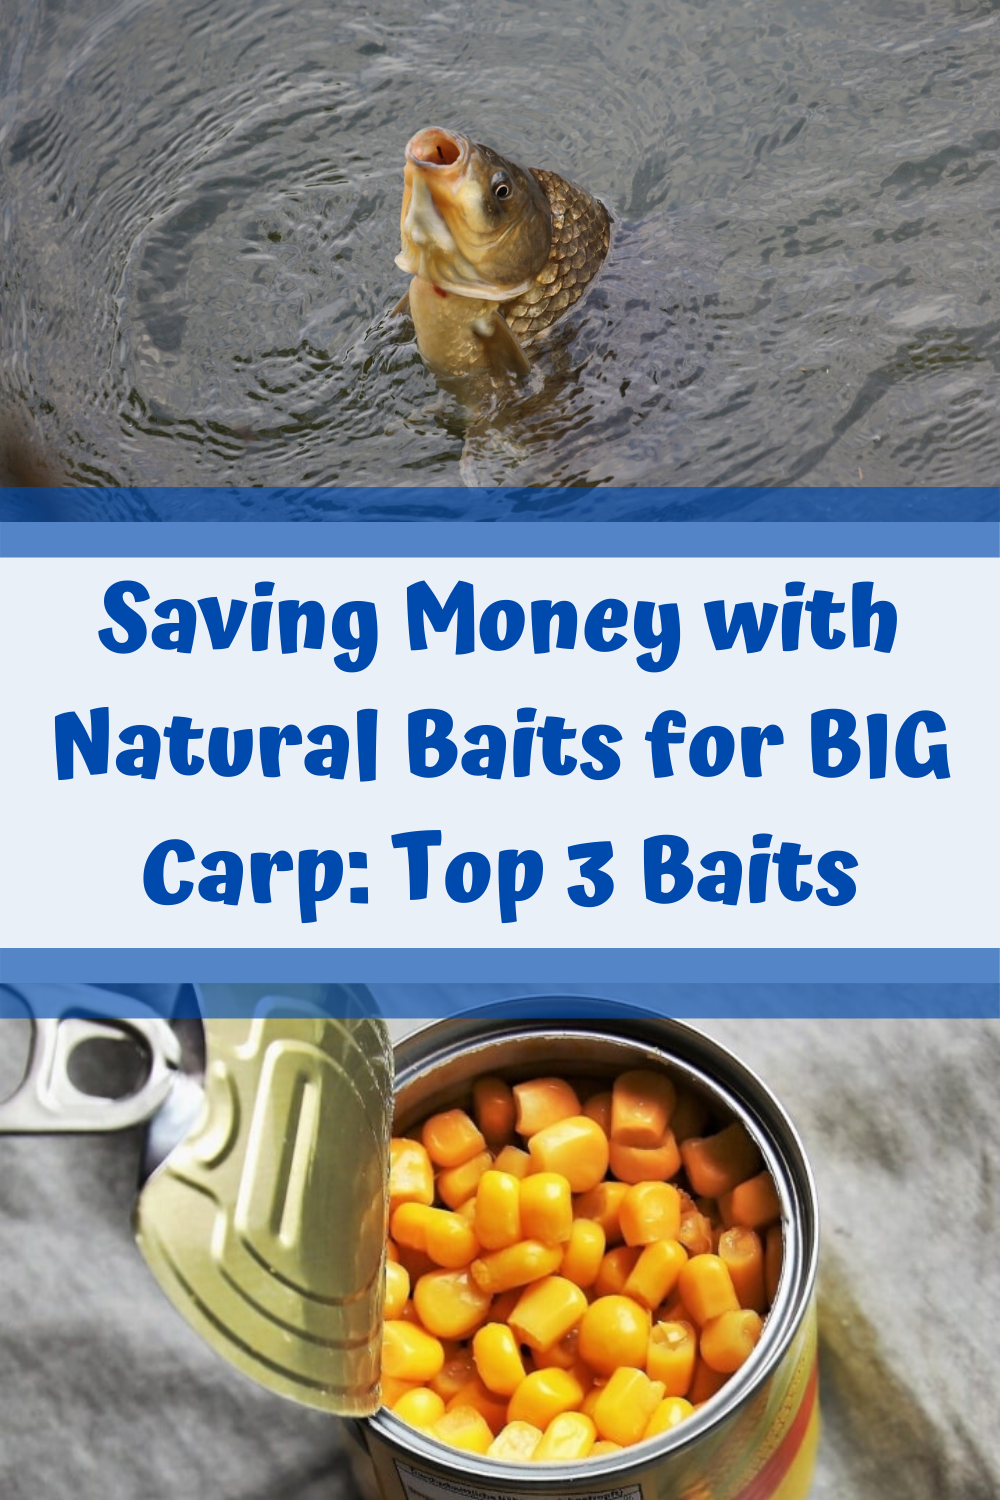 Wanna CATCH BIG CARP and still HAVE A LOT OF MONEY LEFT afterwards? Well, then I'd like to show you the SOLUTION TO ALL YOUR CARP BAITING PROBLEMS! Namely using NATURALY BAITS. These entails LOTS OF BENEFITS, the biggest one being the fact that NATURAL BAITS ARE PRETTY CHEAP AND STILL VERY EFFECTIVE. But, which baits should I chose, you might ask? Well, that's what I'm gonna reveal to you my recent article SAVING MONEY WITH NATURAL BAITS FOR BIG CARP: TOP 3 BAITS. HAVE FUN CATCHING SOME BIG CARP